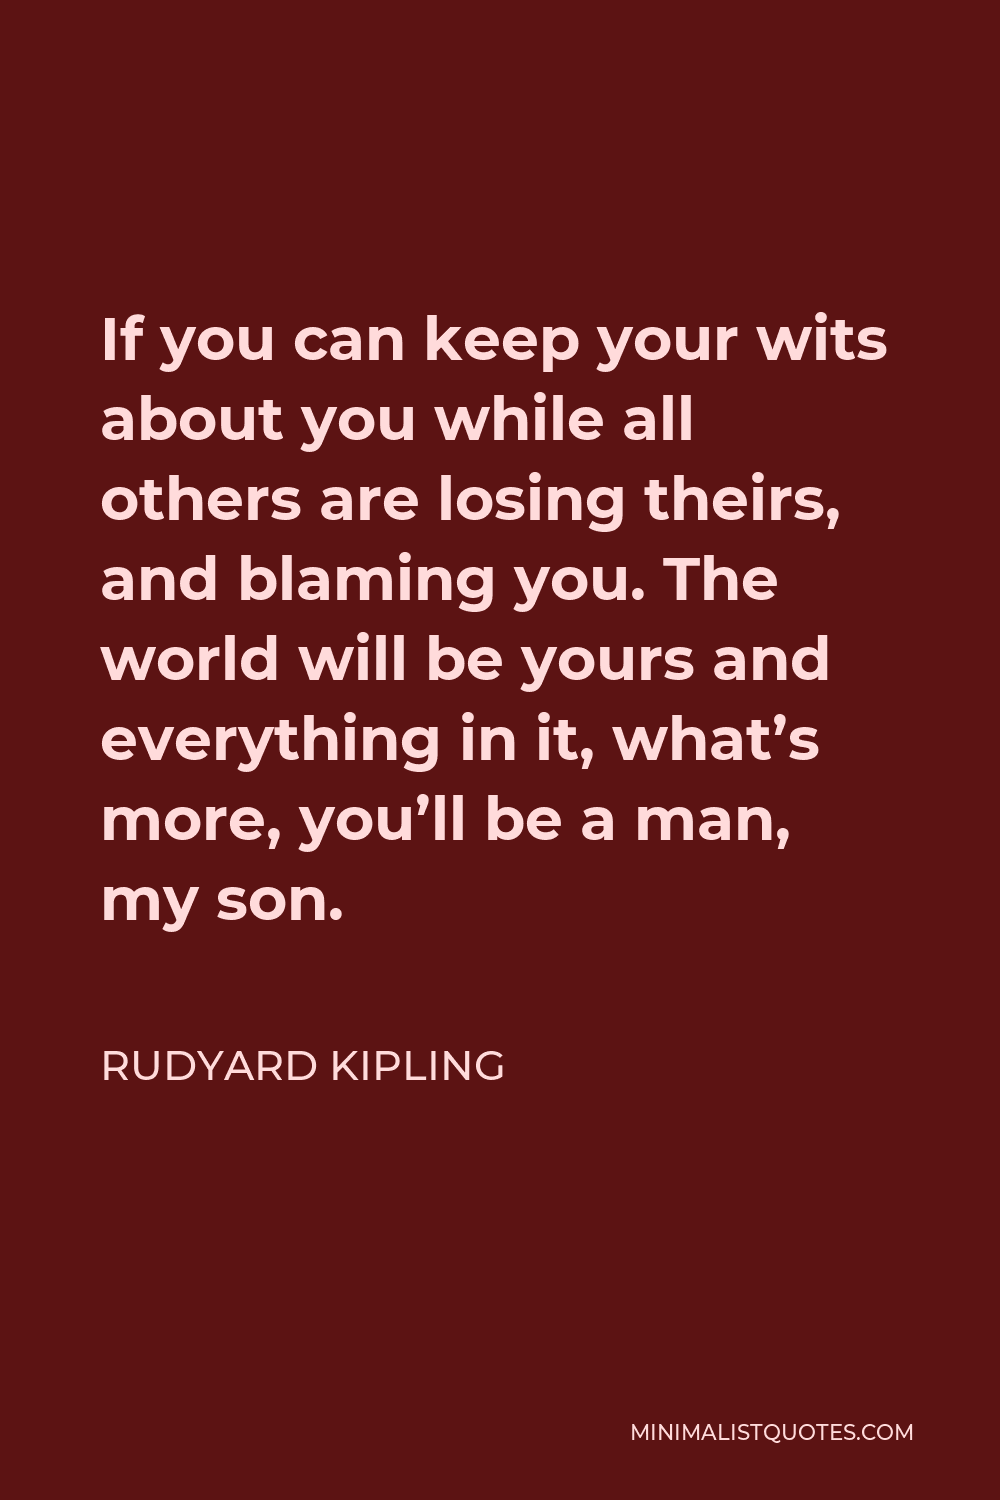 Rudyard Kipling Quote - If you can keep your wits about you while all others are losing theirs, and blaming you. The world will be yours and everything in it, what's more, you'll be a man, my son.